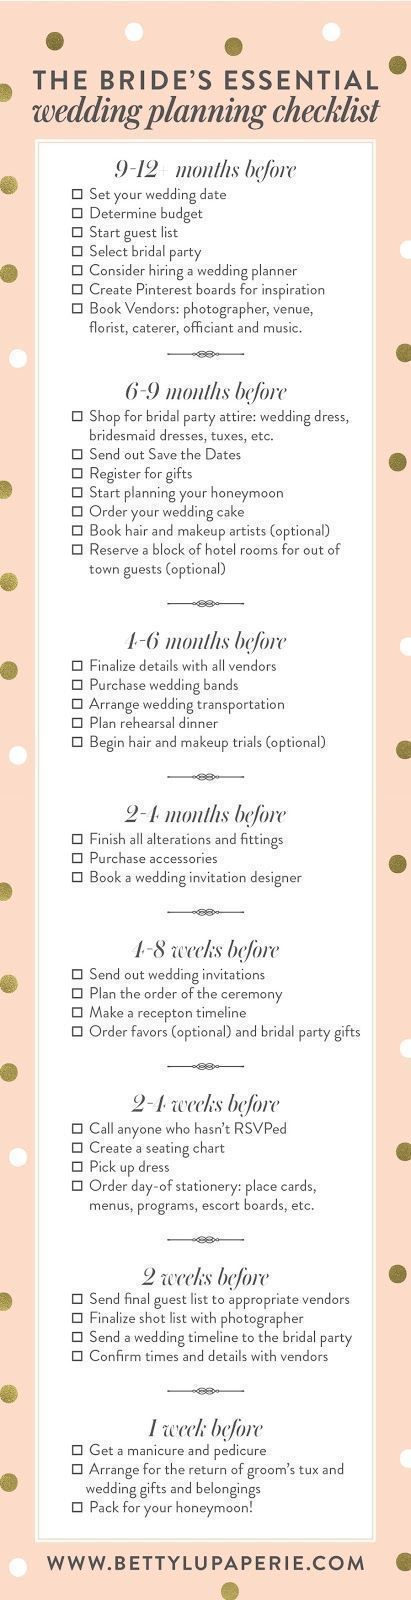 Best Wedding Planning Guide Images On   Weddings